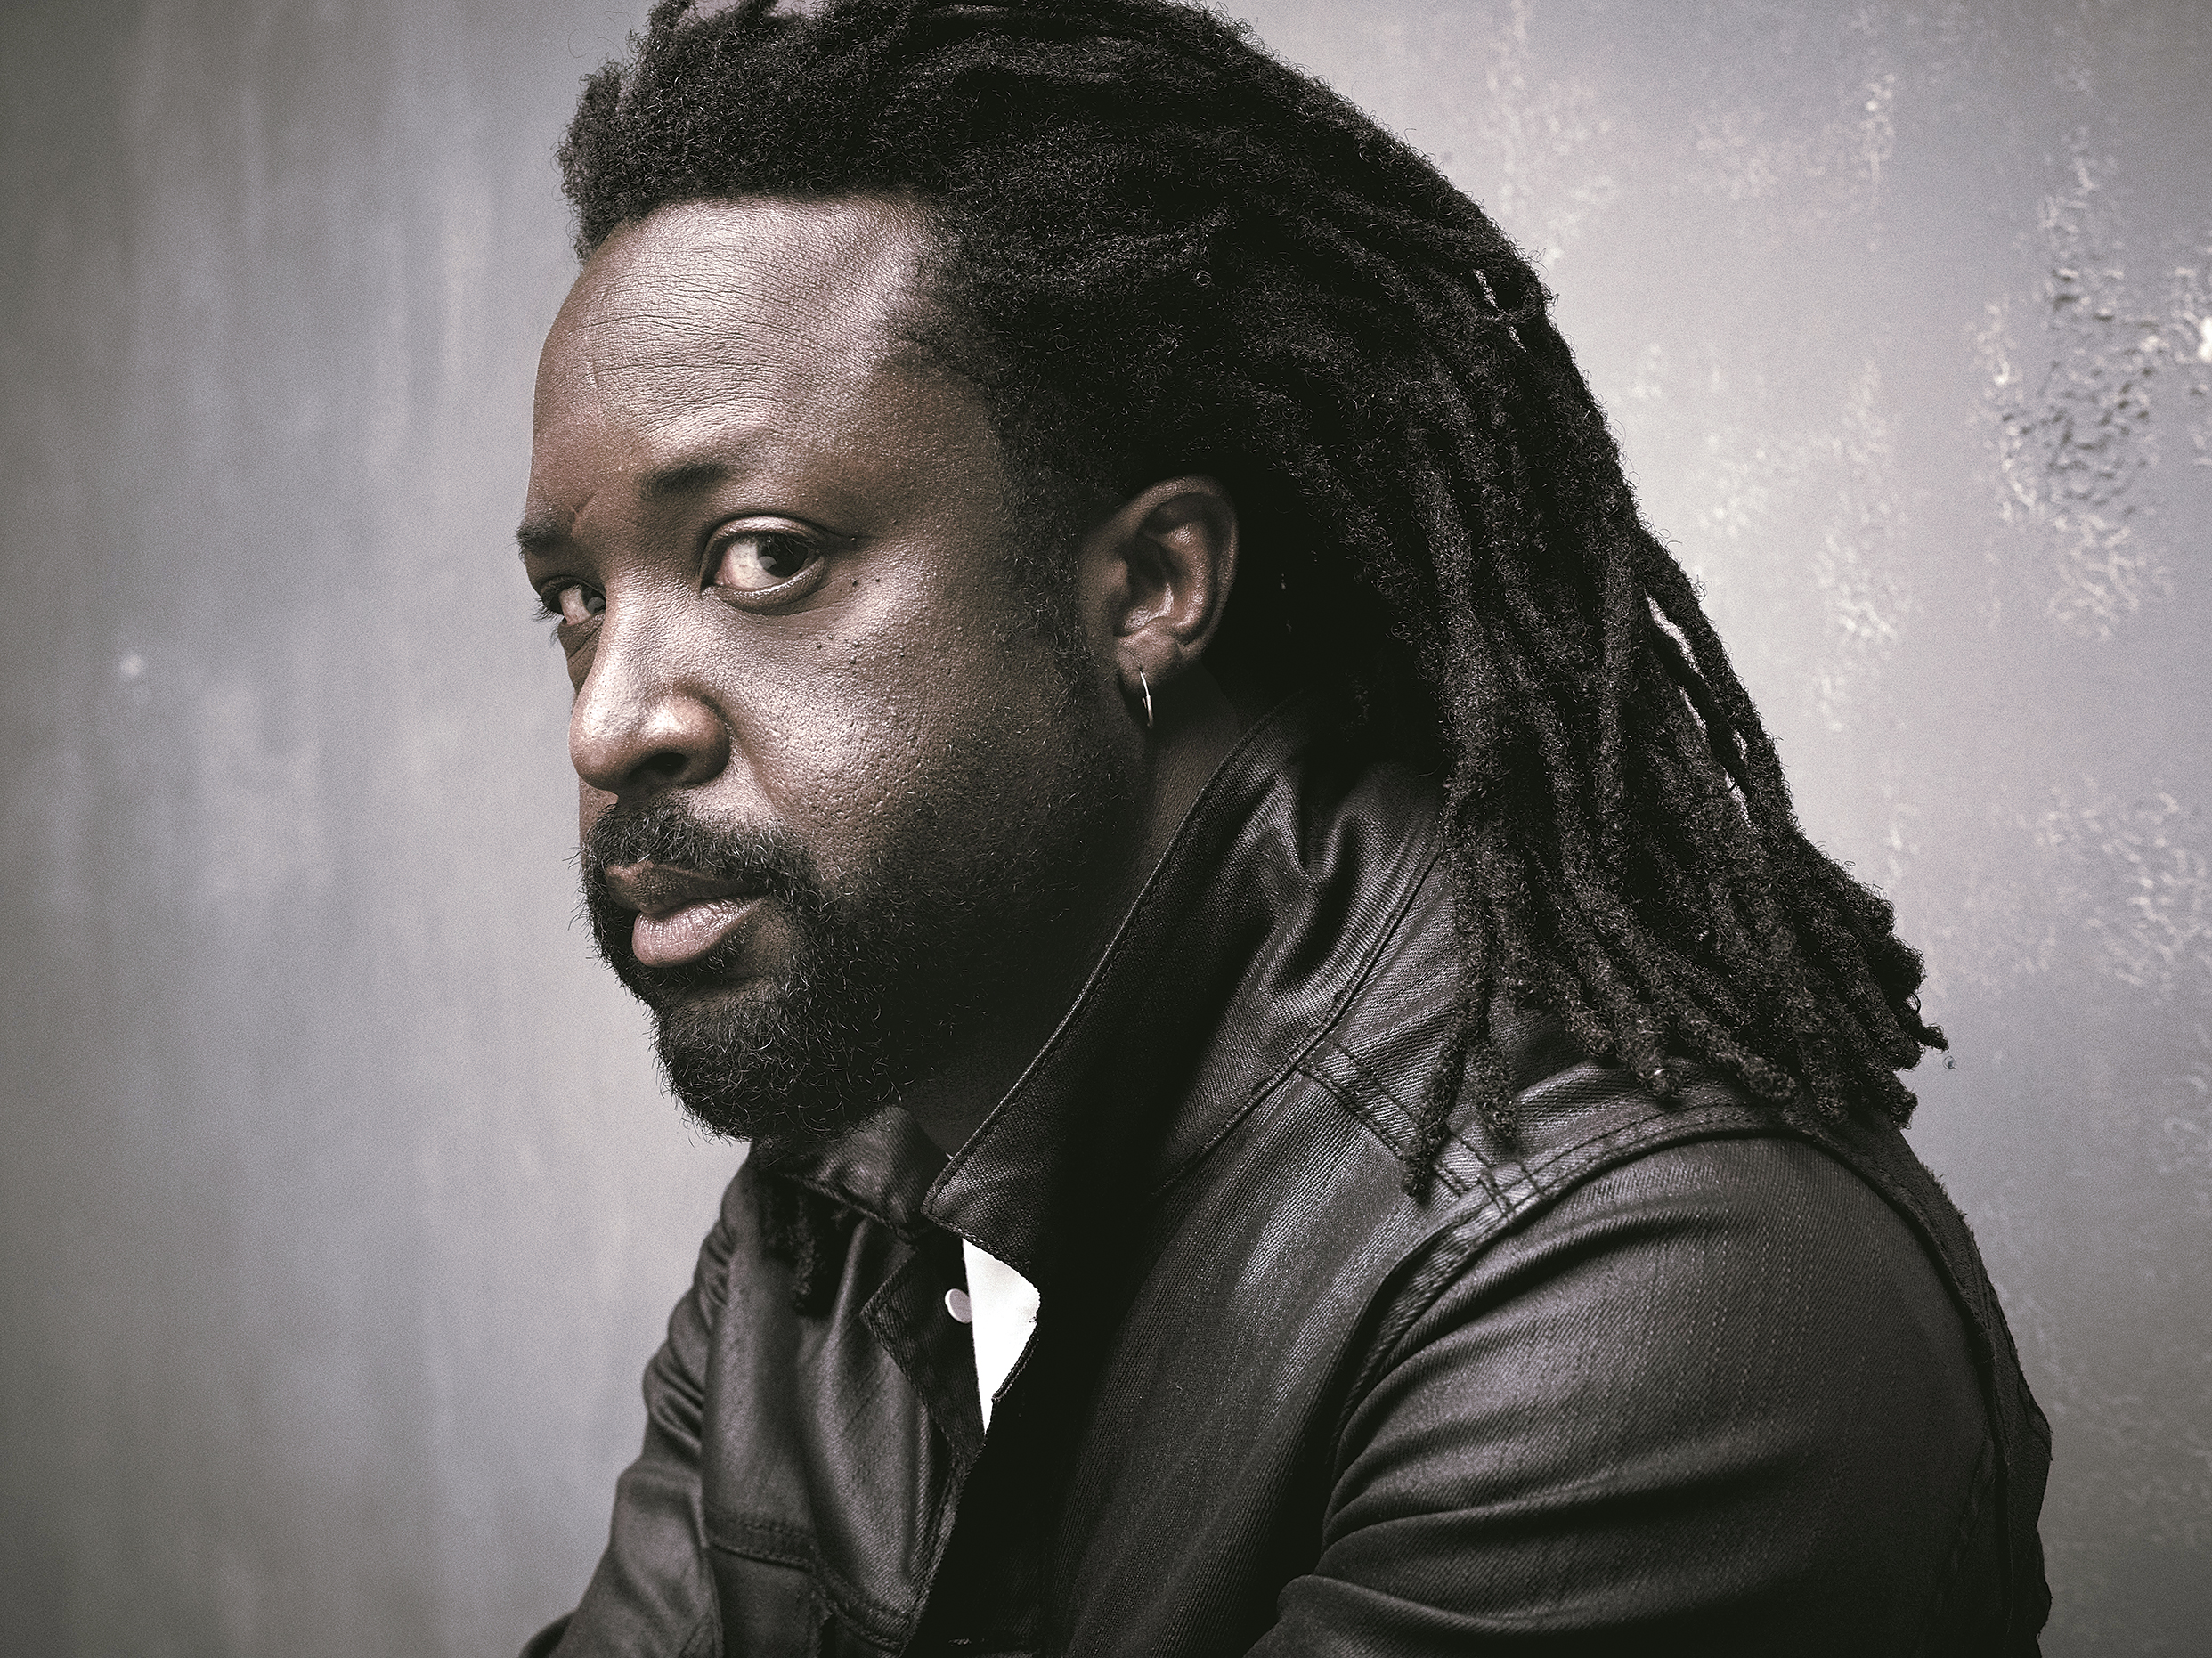 Photograph of Marlon James by Mark Seliger.